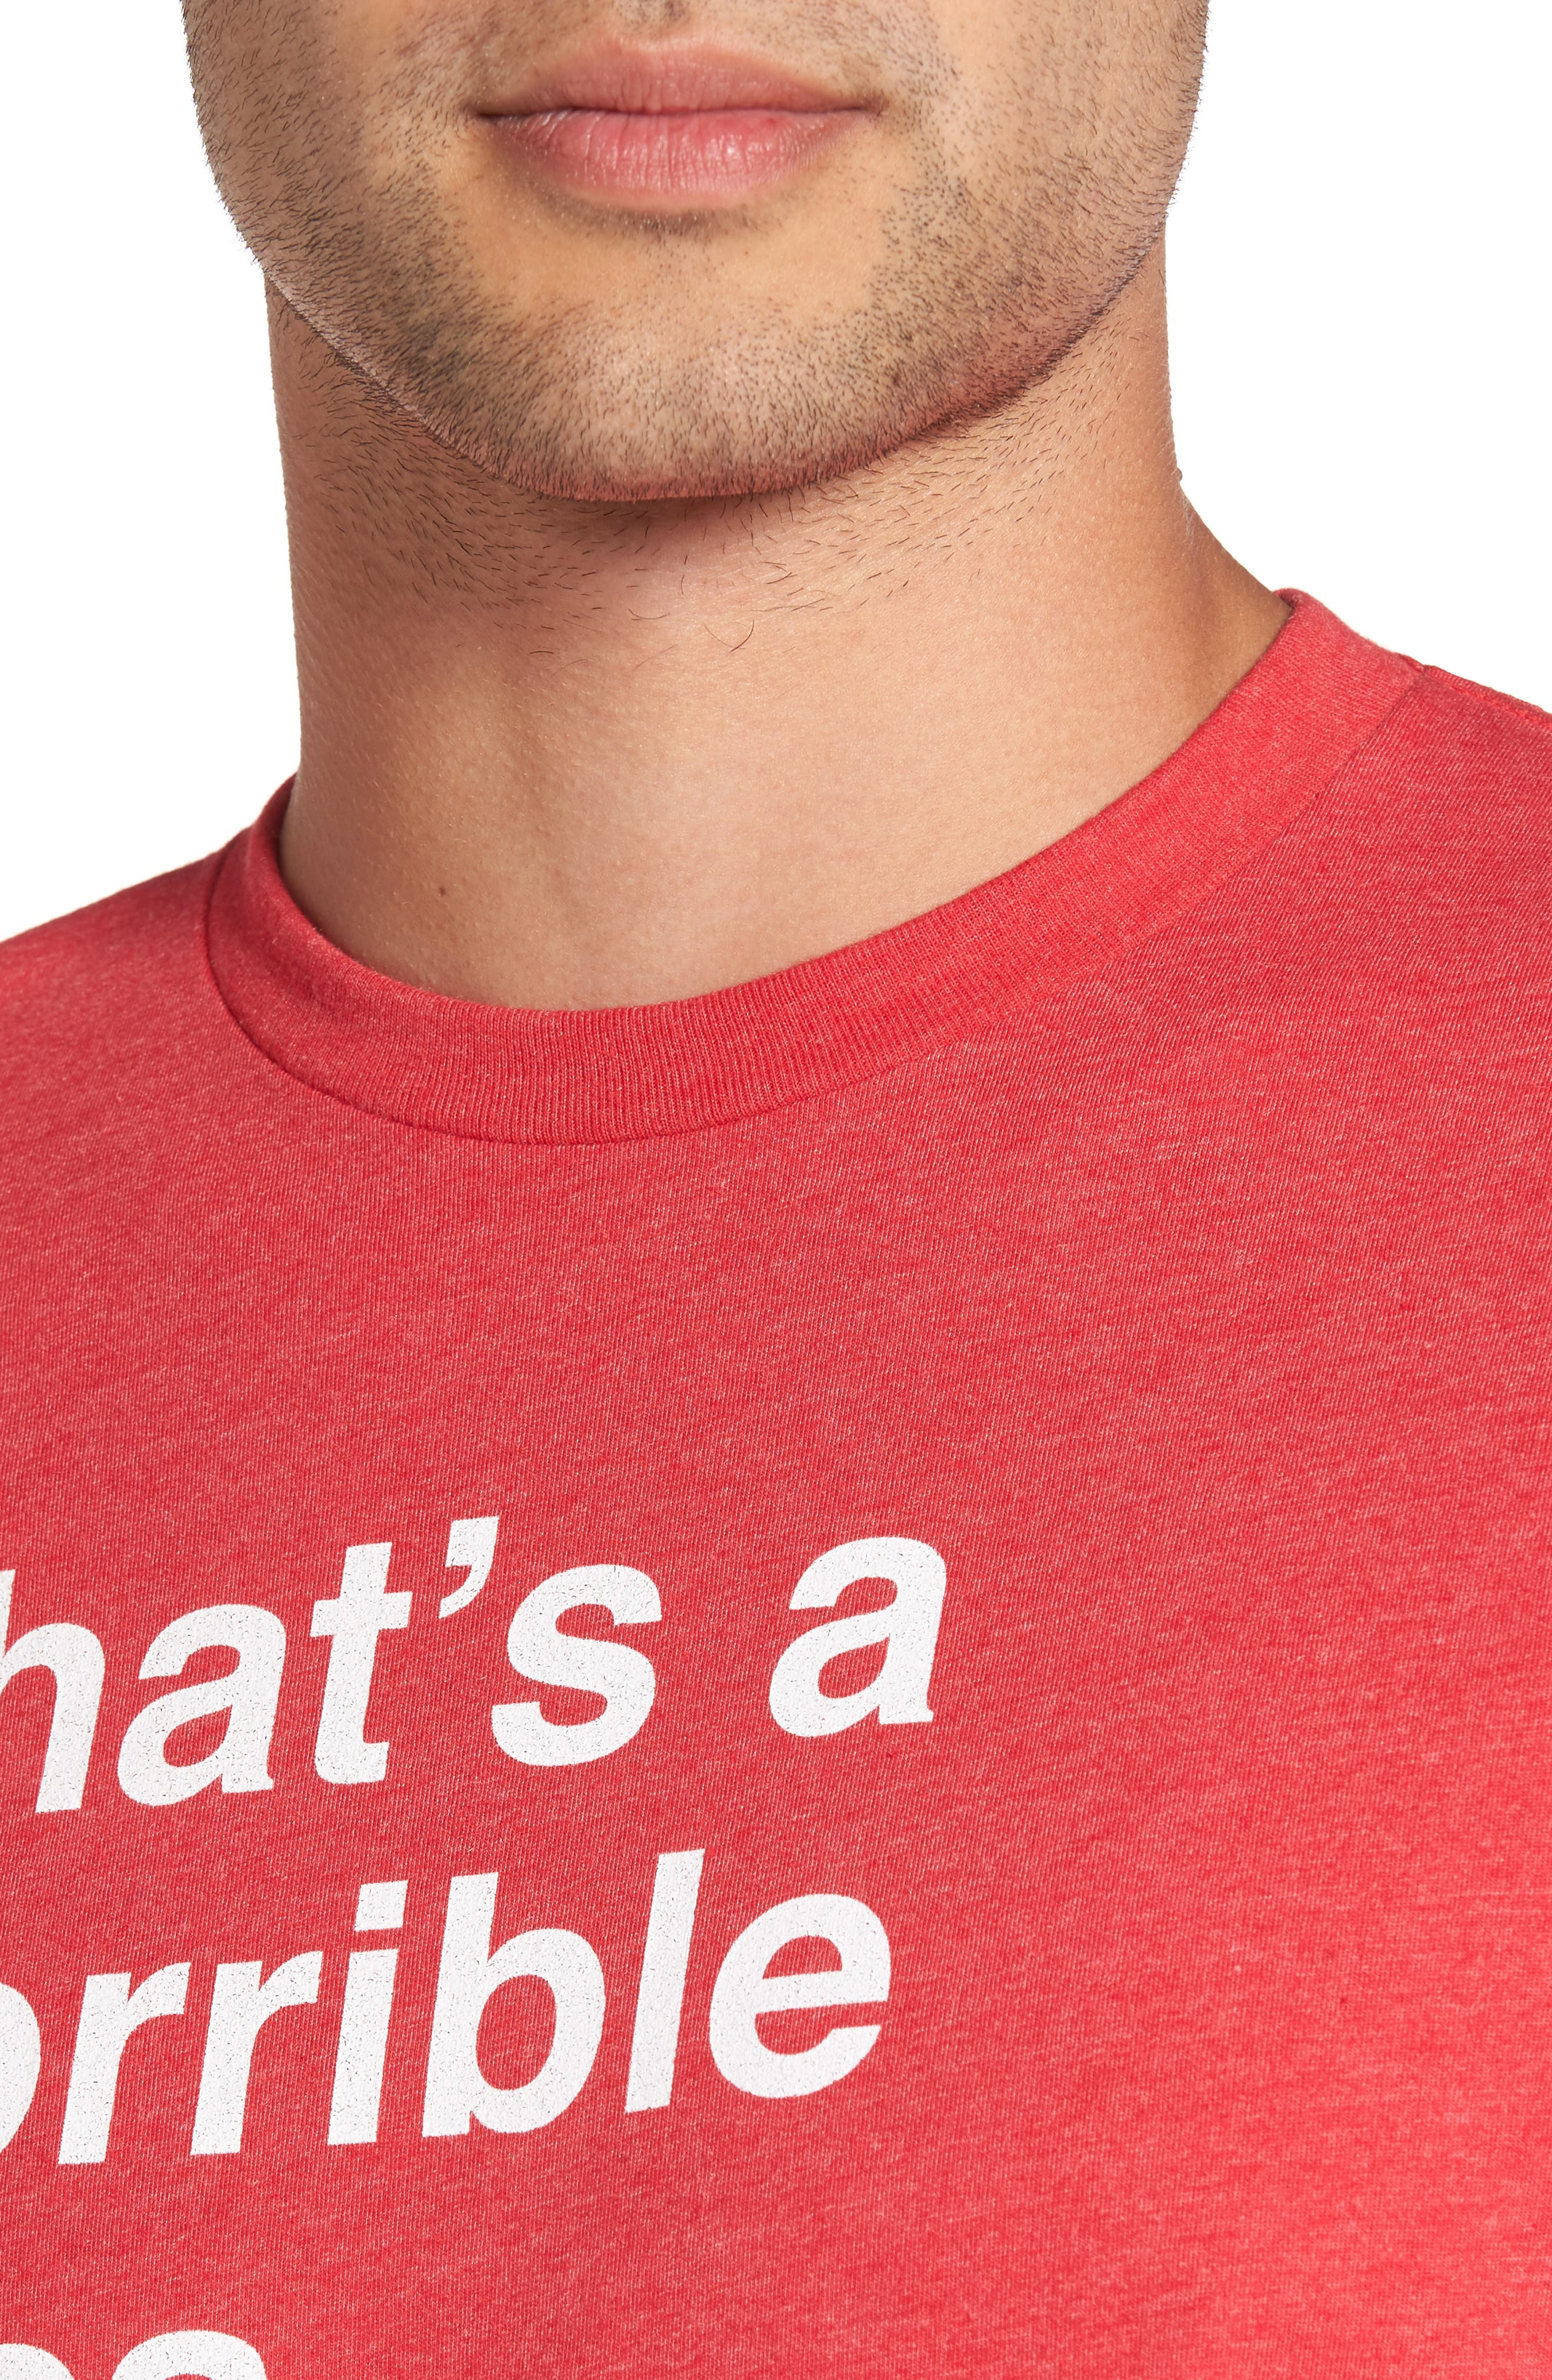 Horrible Idea Graphic T-Shirt,                             Alternate thumbnail 4, color,                             600